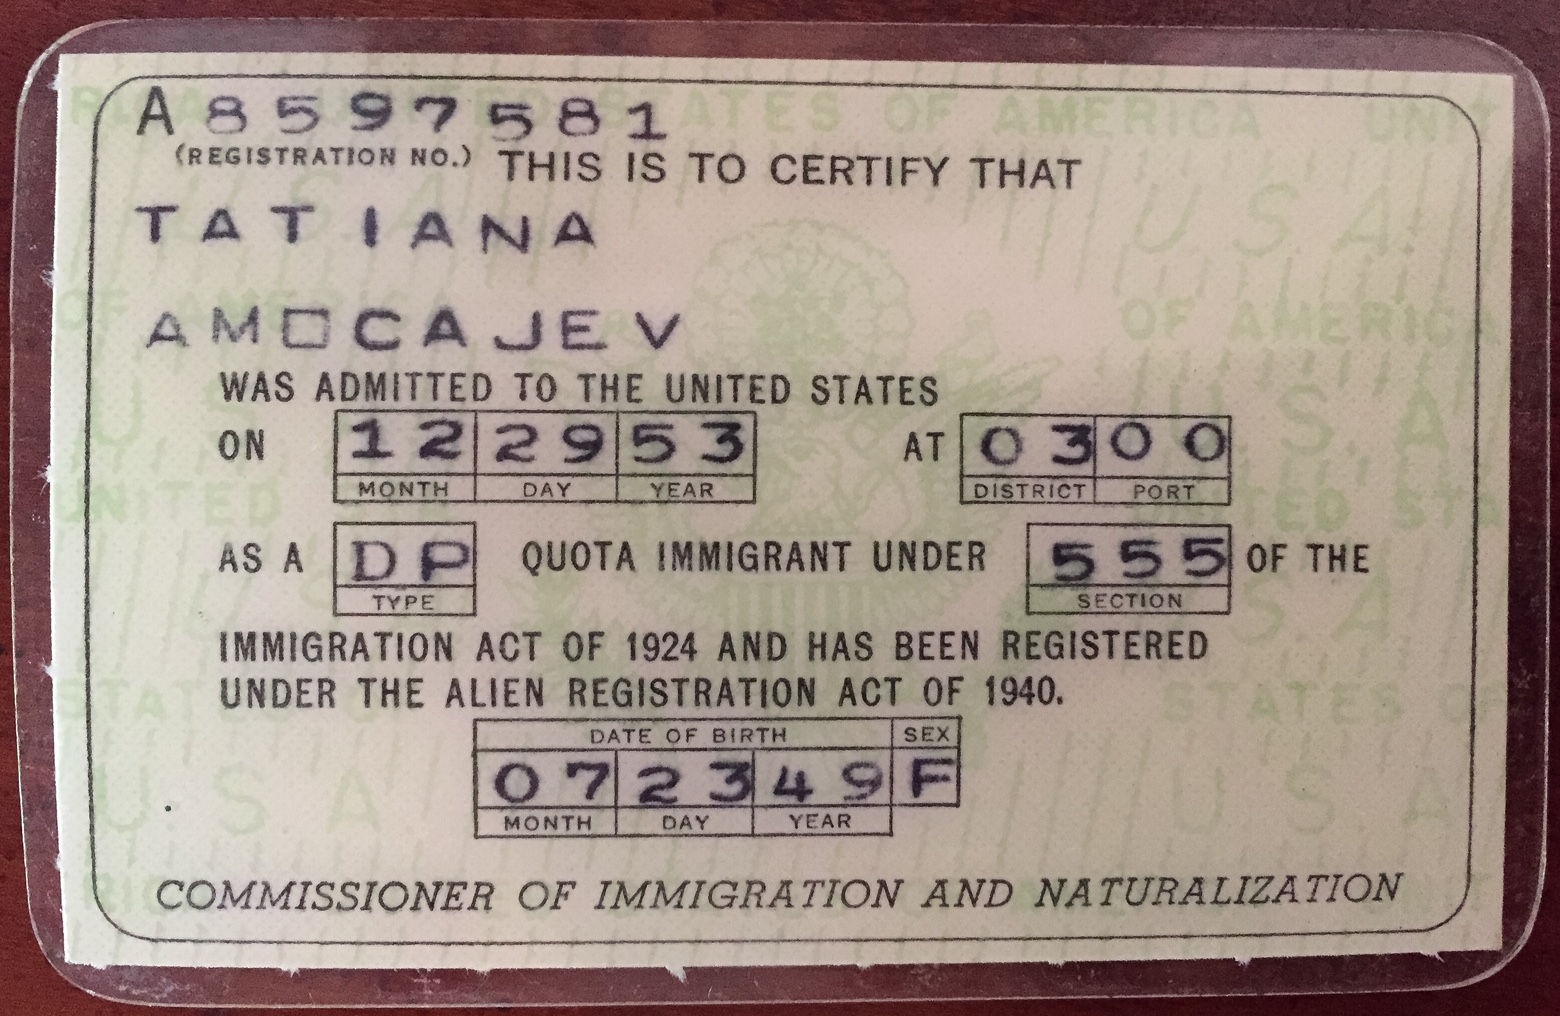 My green card.